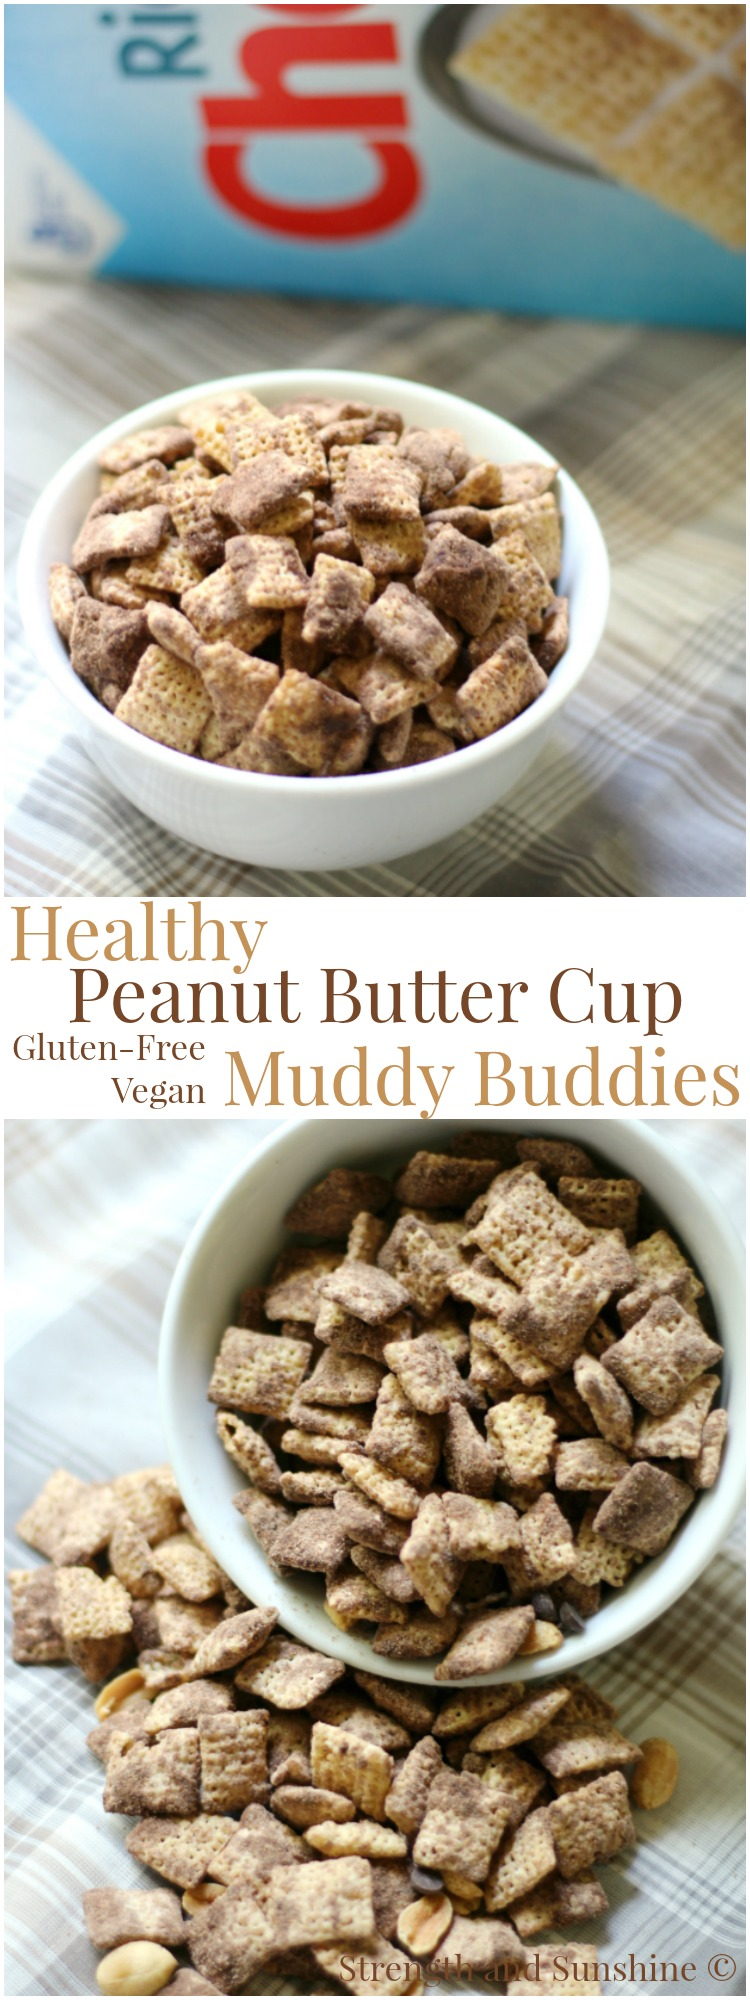 Healthy Peanut Butter Cup Muddy Buddies Gluten Free Vegan